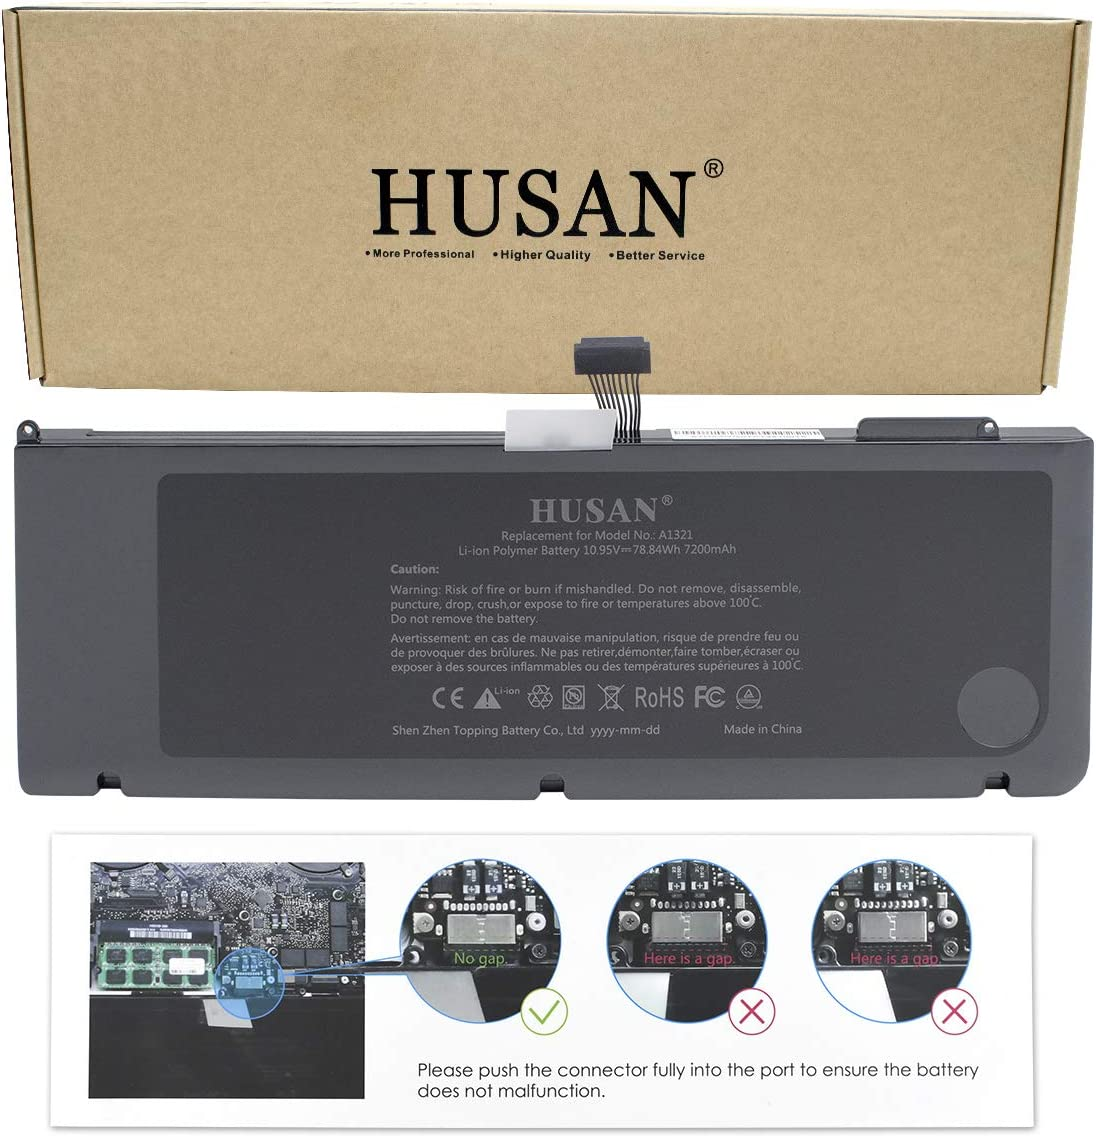 HUSAN A1321 Laptop Battery for MacBook Pro 15 inch A1286 ,fit MB985 MB986J//A MB986 MC118 020-6380-A Only for Mid 2009 2010 Version